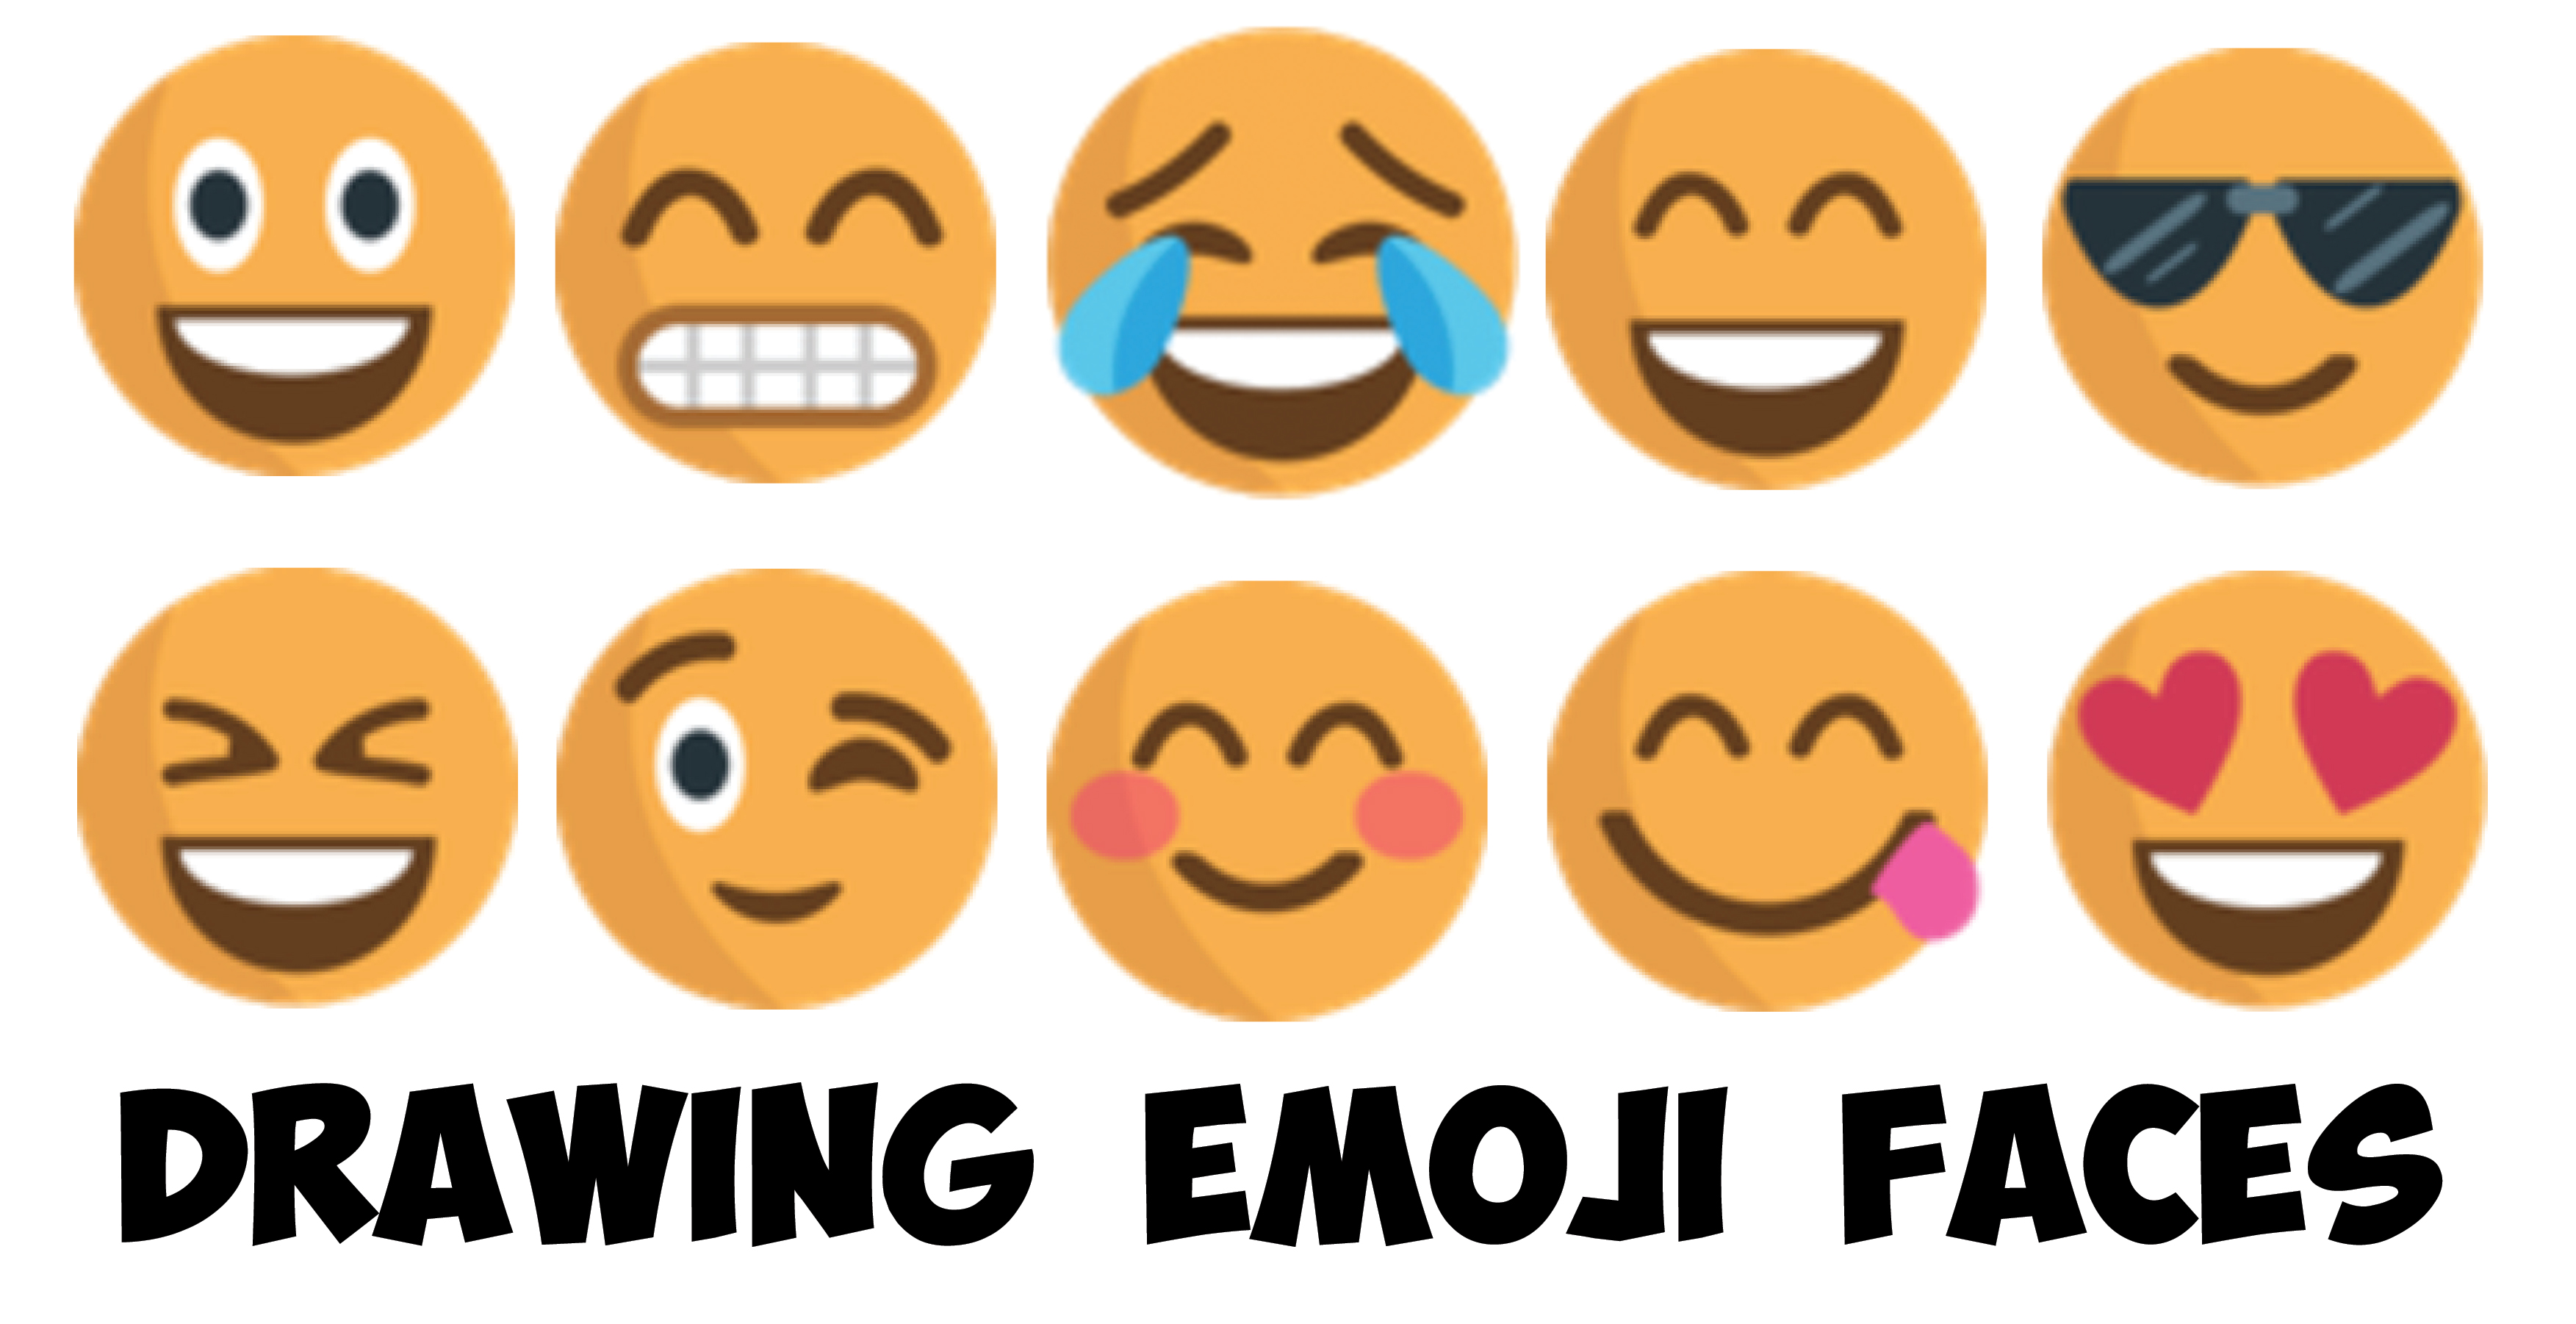 Our New Kids Drawing Book : How To Draw Emojis And Emoji Faces